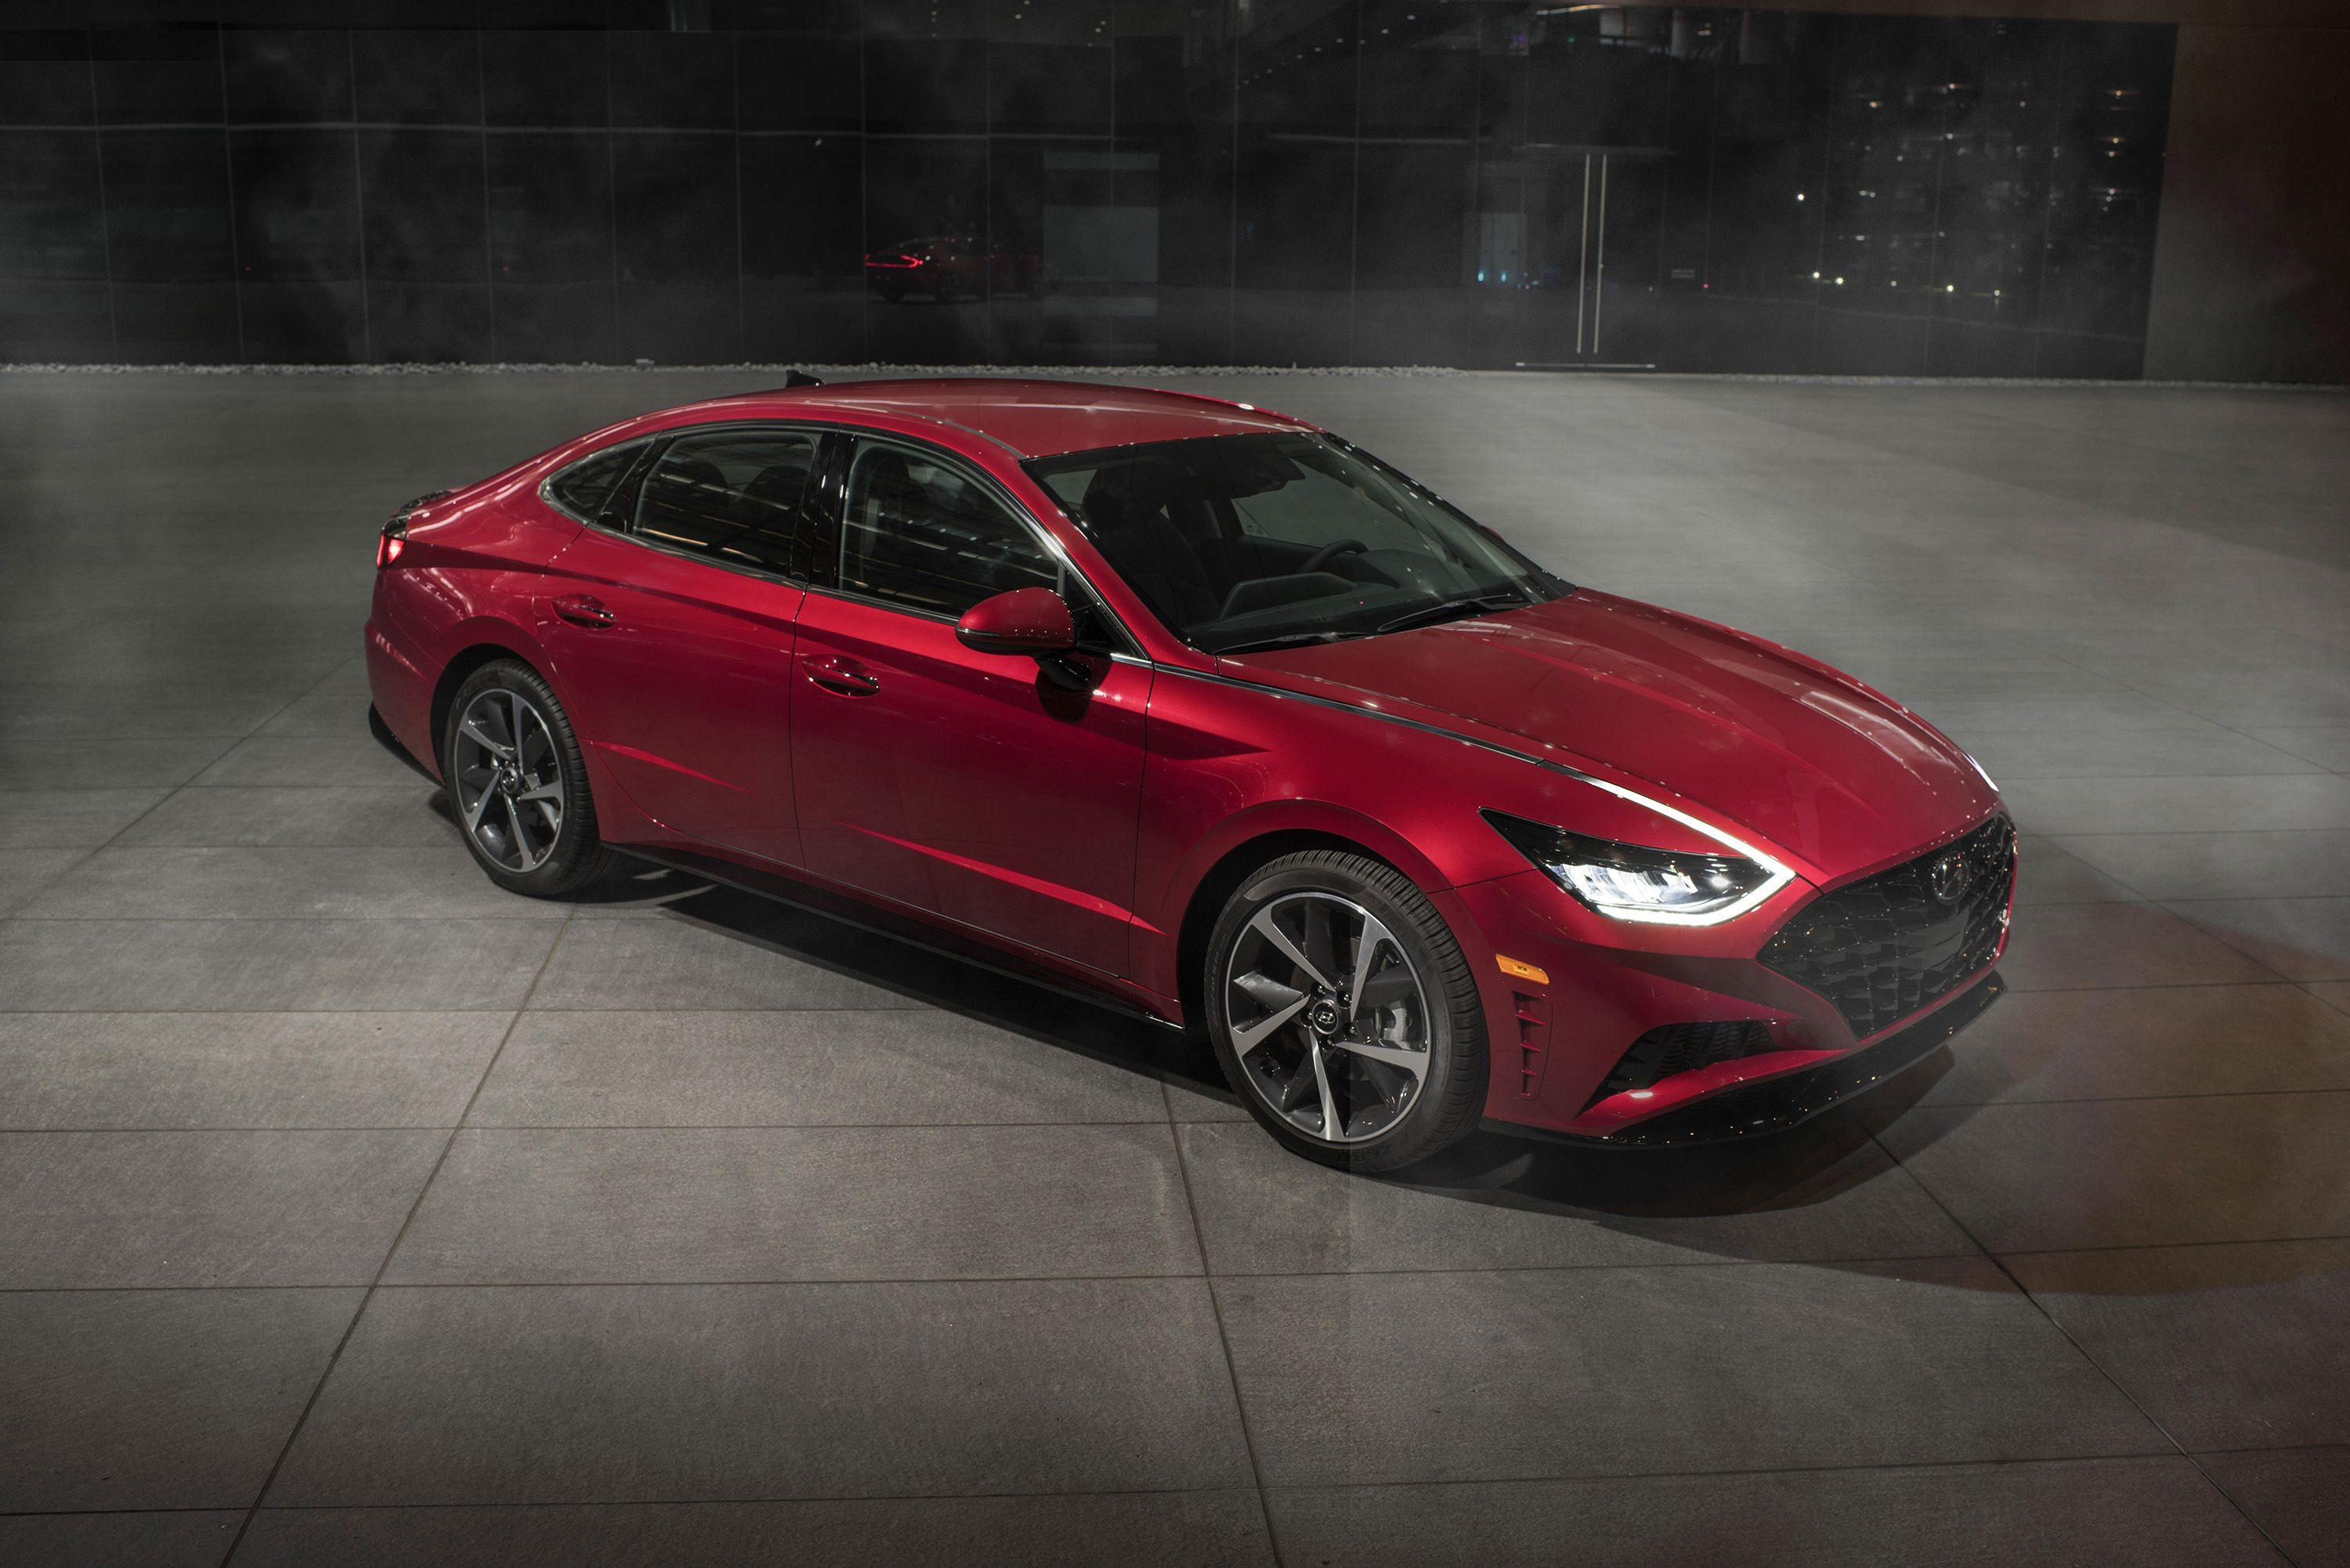 """<p>Gazing upon <a href=""""https://www.caranddriver.com/hyundai/sonata"""" rel=""""nofollow noopener"""" target=""""_blank"""" data-ylk=""""slk:the new 2020 Hyundai Sonata"""" class=""""link rapid-noclick-resp"""">the new 2020 Hyundai Sonata</a> in person brings the design to life and makes the car's eighth-generation overhaul even more impressive than what we could gather from <a href=""""https://www.caranddriver.com/news/a26692381/2020-hyundai-sonata-photos-info/"""" rel=""""nofollow noopener"""" target=""""_blank"""" data-ylk=""""slk:its initial photos"""" class=""""link rapid-noclick-resp"""">its initial photos</a>. Every detail is dripping with artistic influence: the extremely low hood, the shapely roofline that's an inch lower than before, and the significant depth found in the body sides. The rear deck is shorter, the overall diameter of the tires slightly larger. From the side, two prominent creases playfully converge and then diverge again as they run from front to back.</p>"""